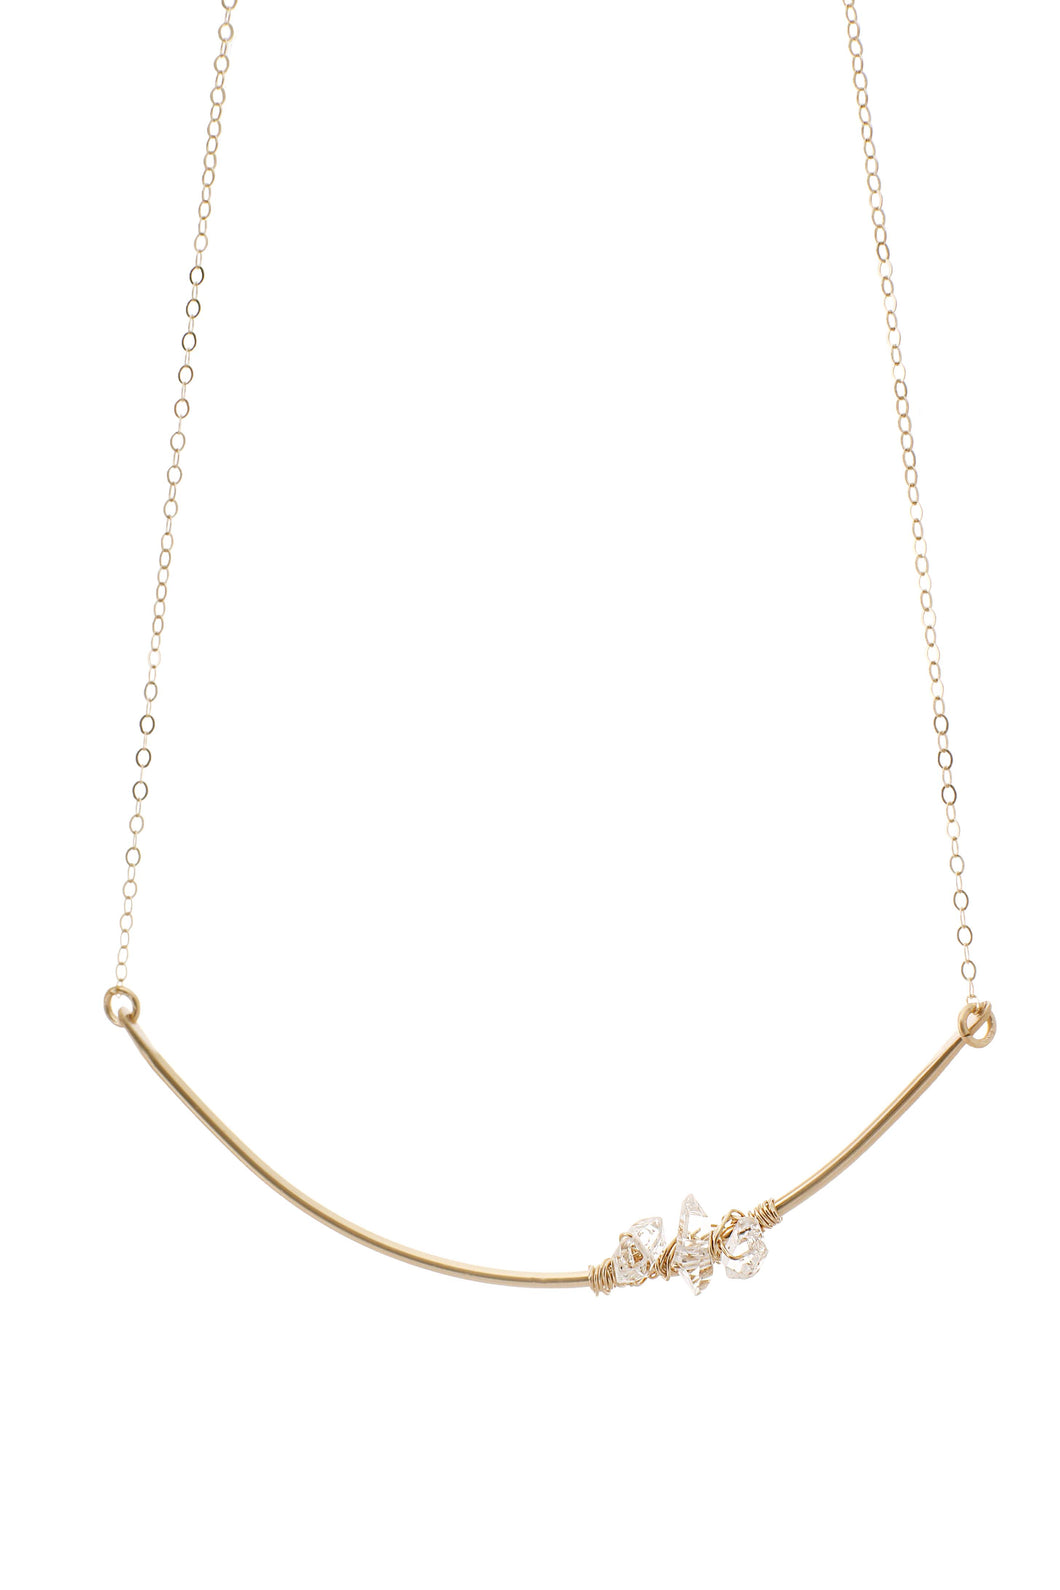 Clarity 14k gold fill cluster Necklace